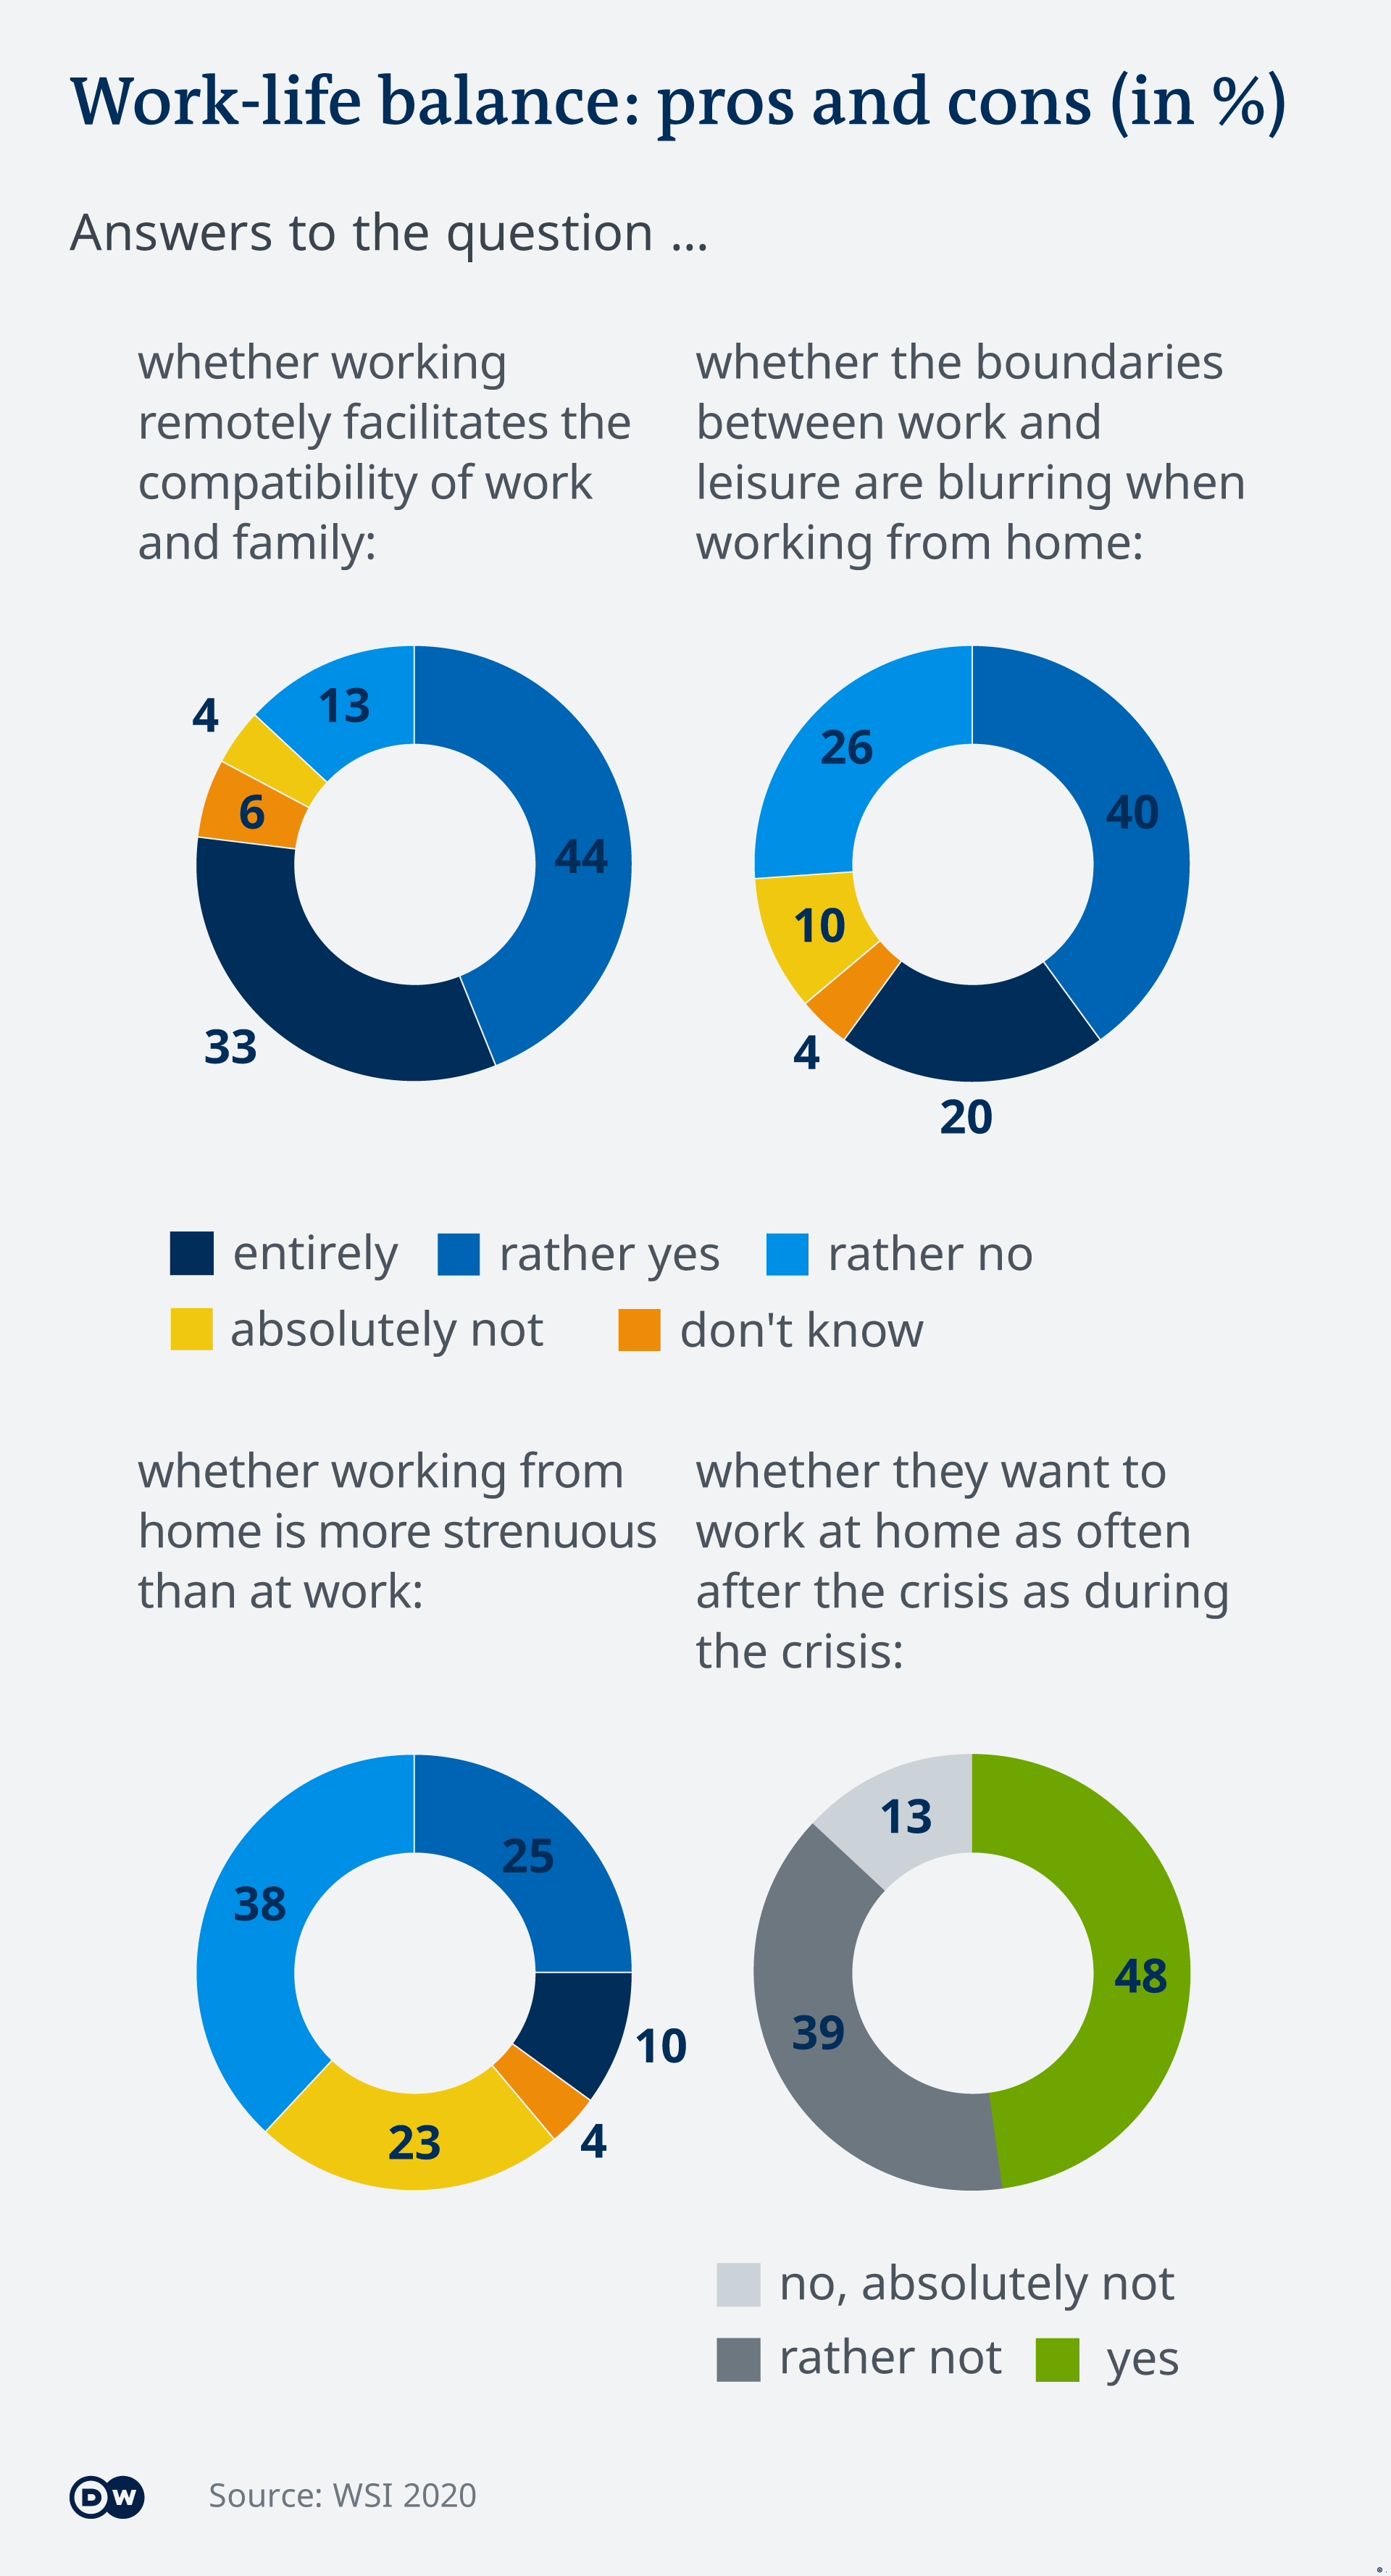 A graphic showing the pros and cons of teleworking and its effects on people's work-life balance